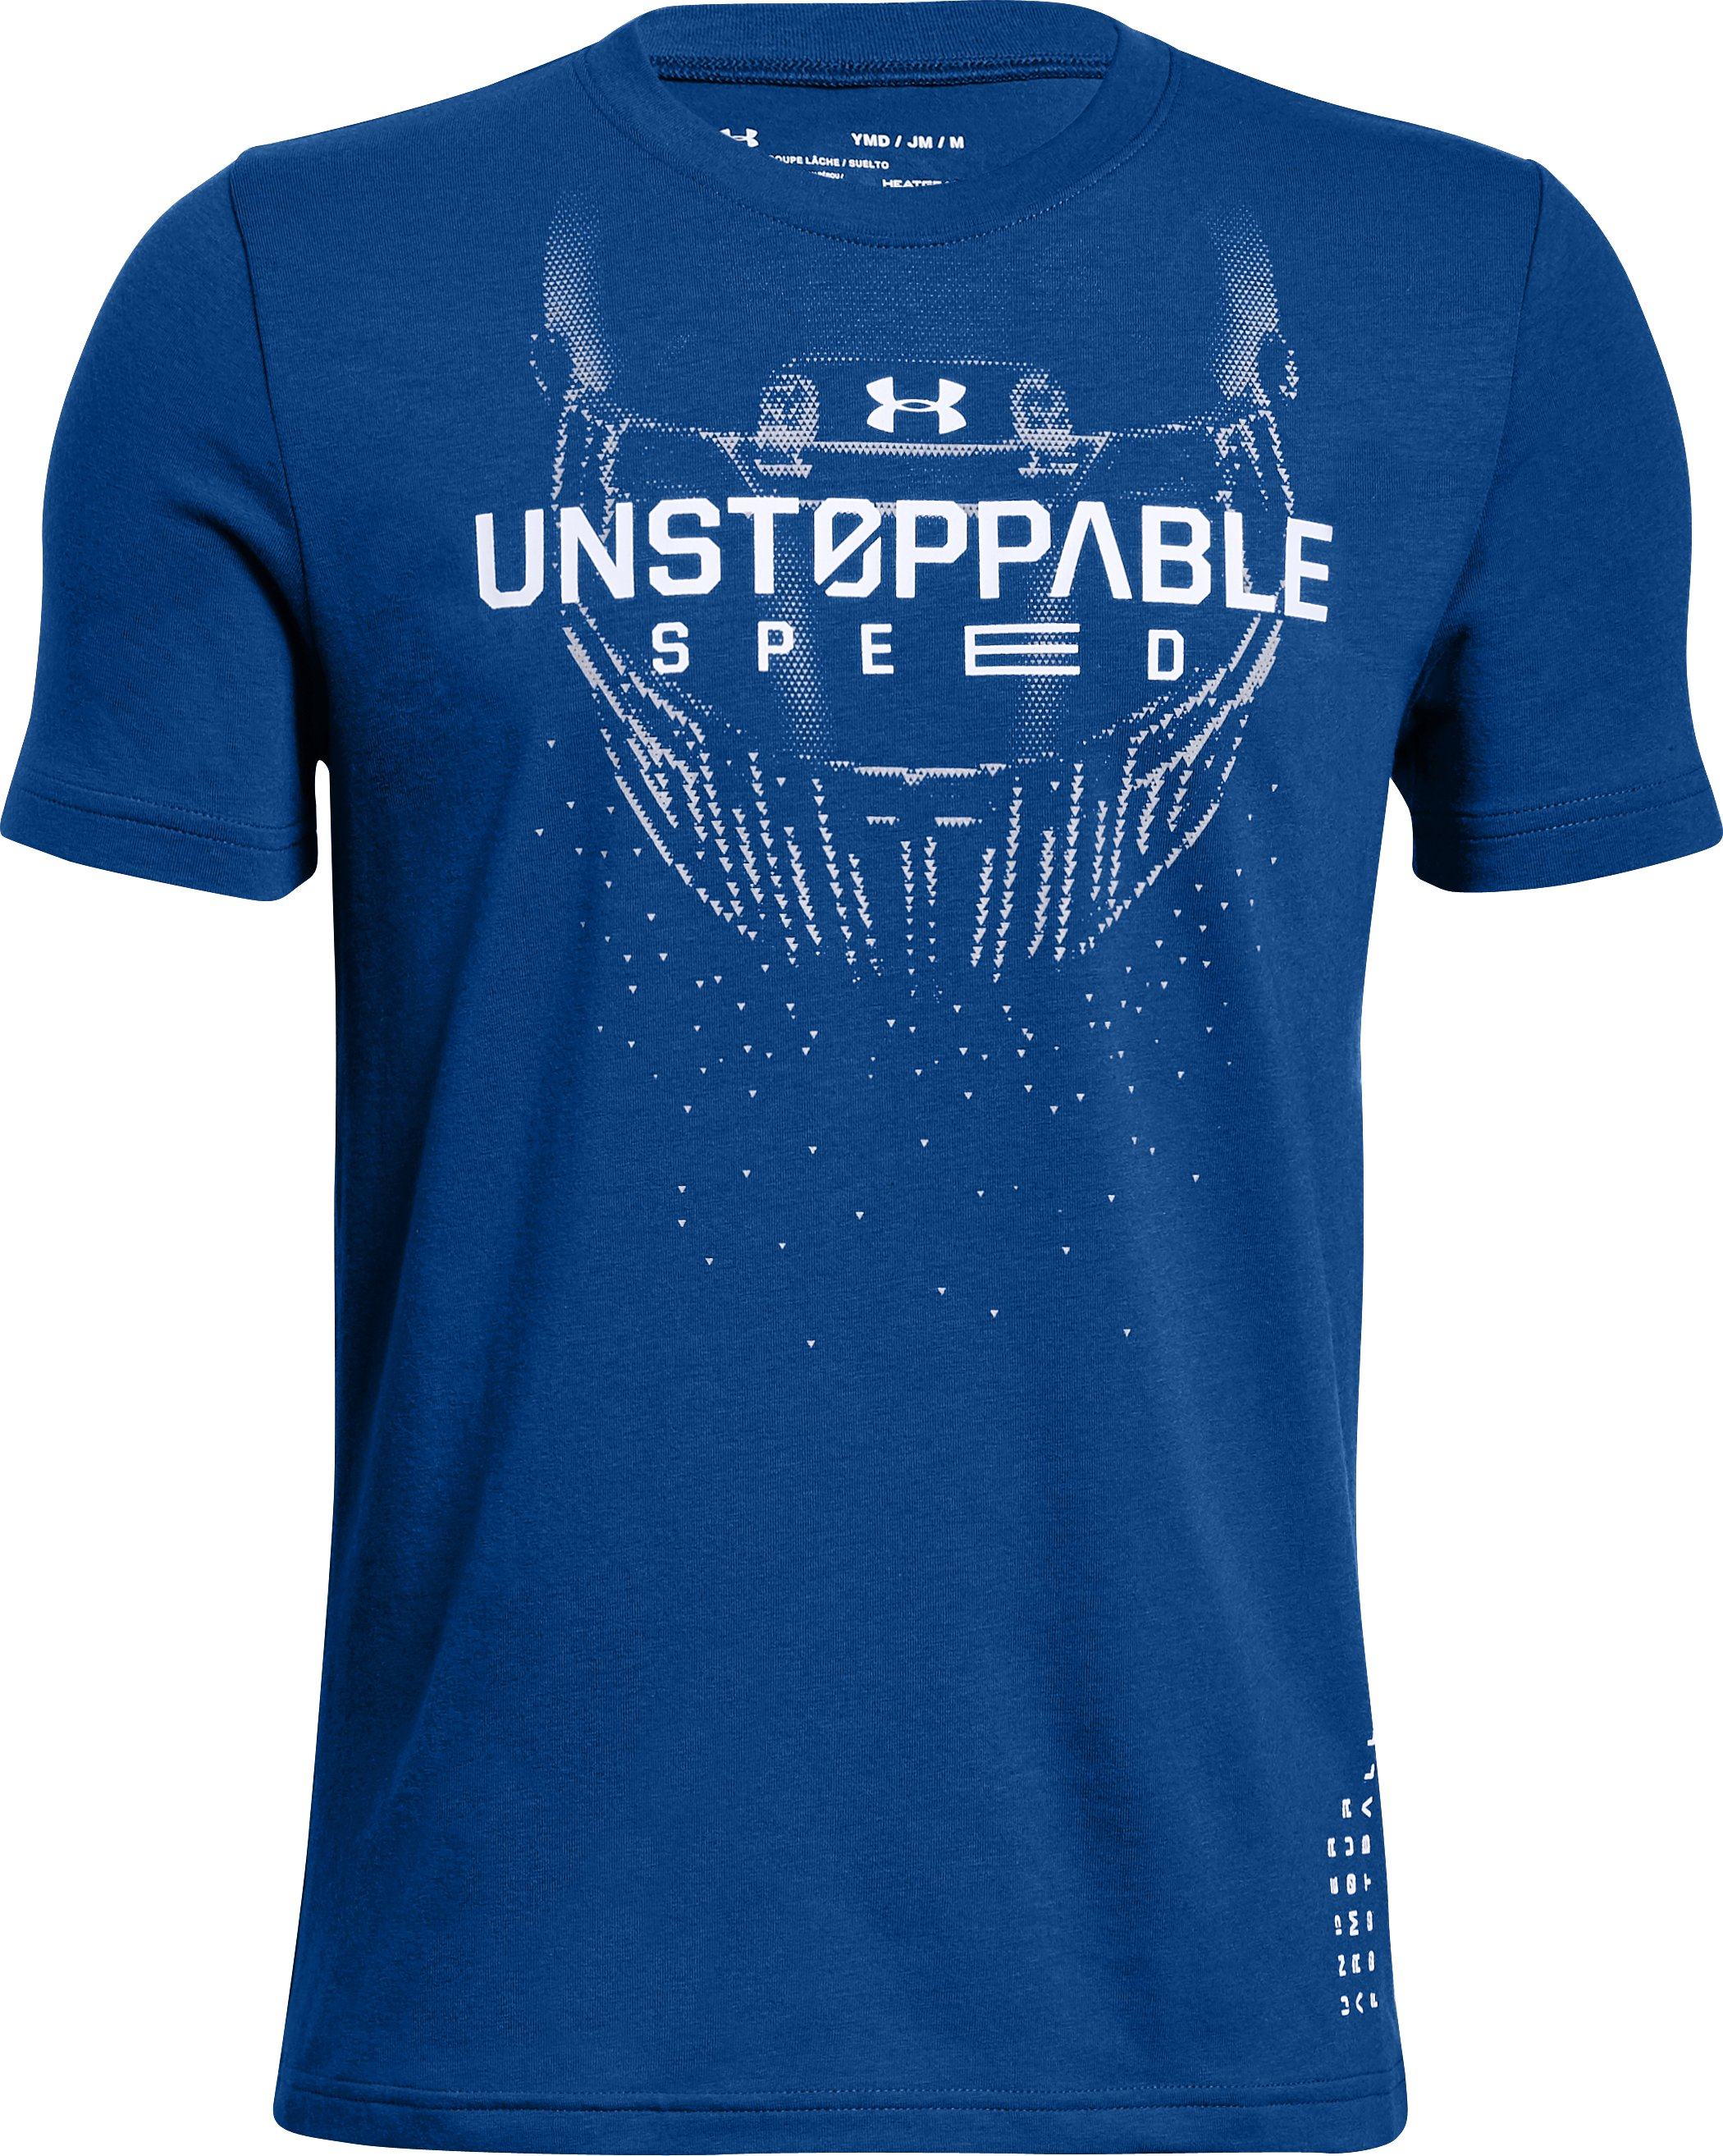 Boys' UA Unstoppable Speed T-Shirt, Royal,